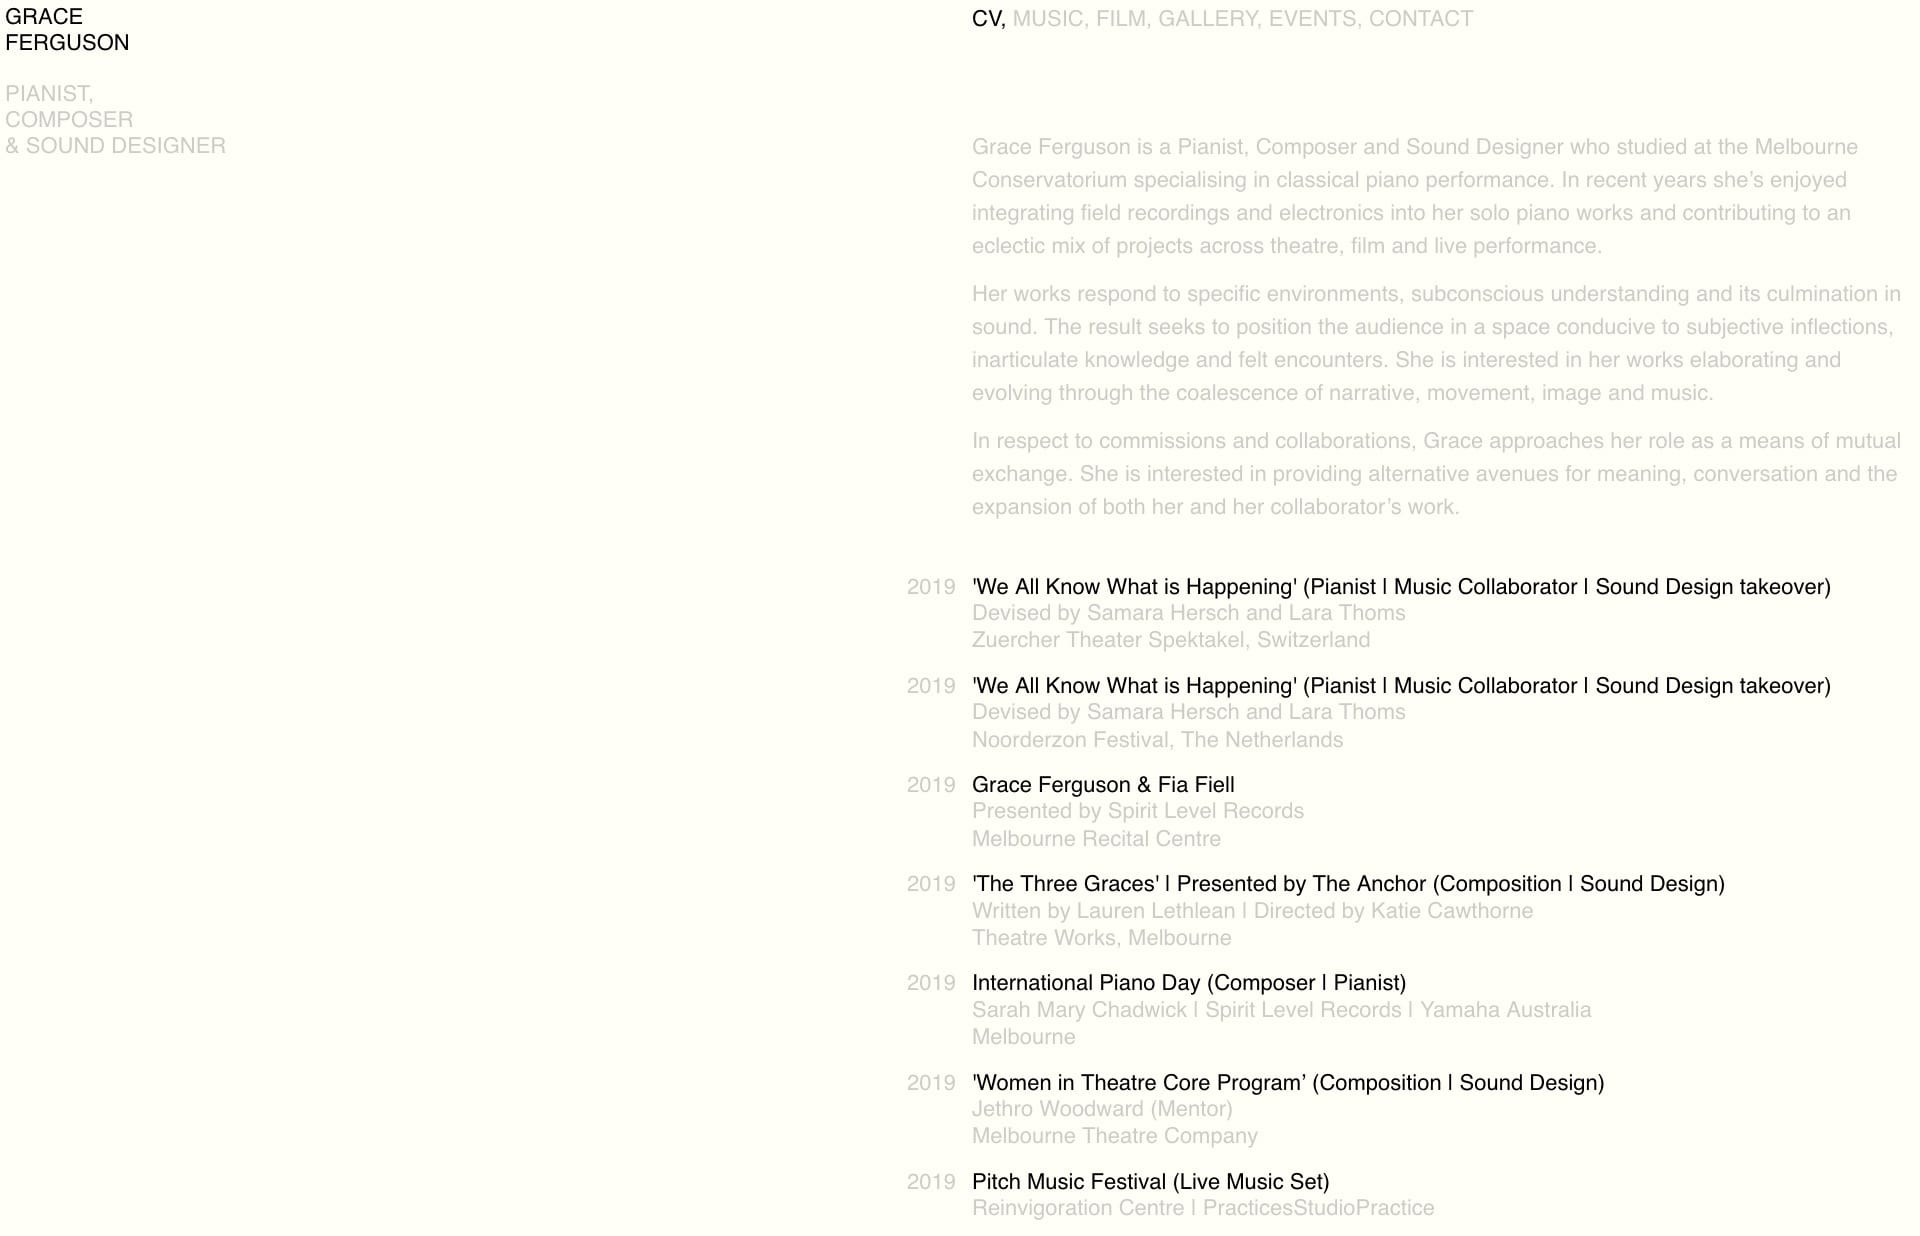 Screenshot of the website Grace Ferguson, featured on The Gallery, a curated collection of minimal websites